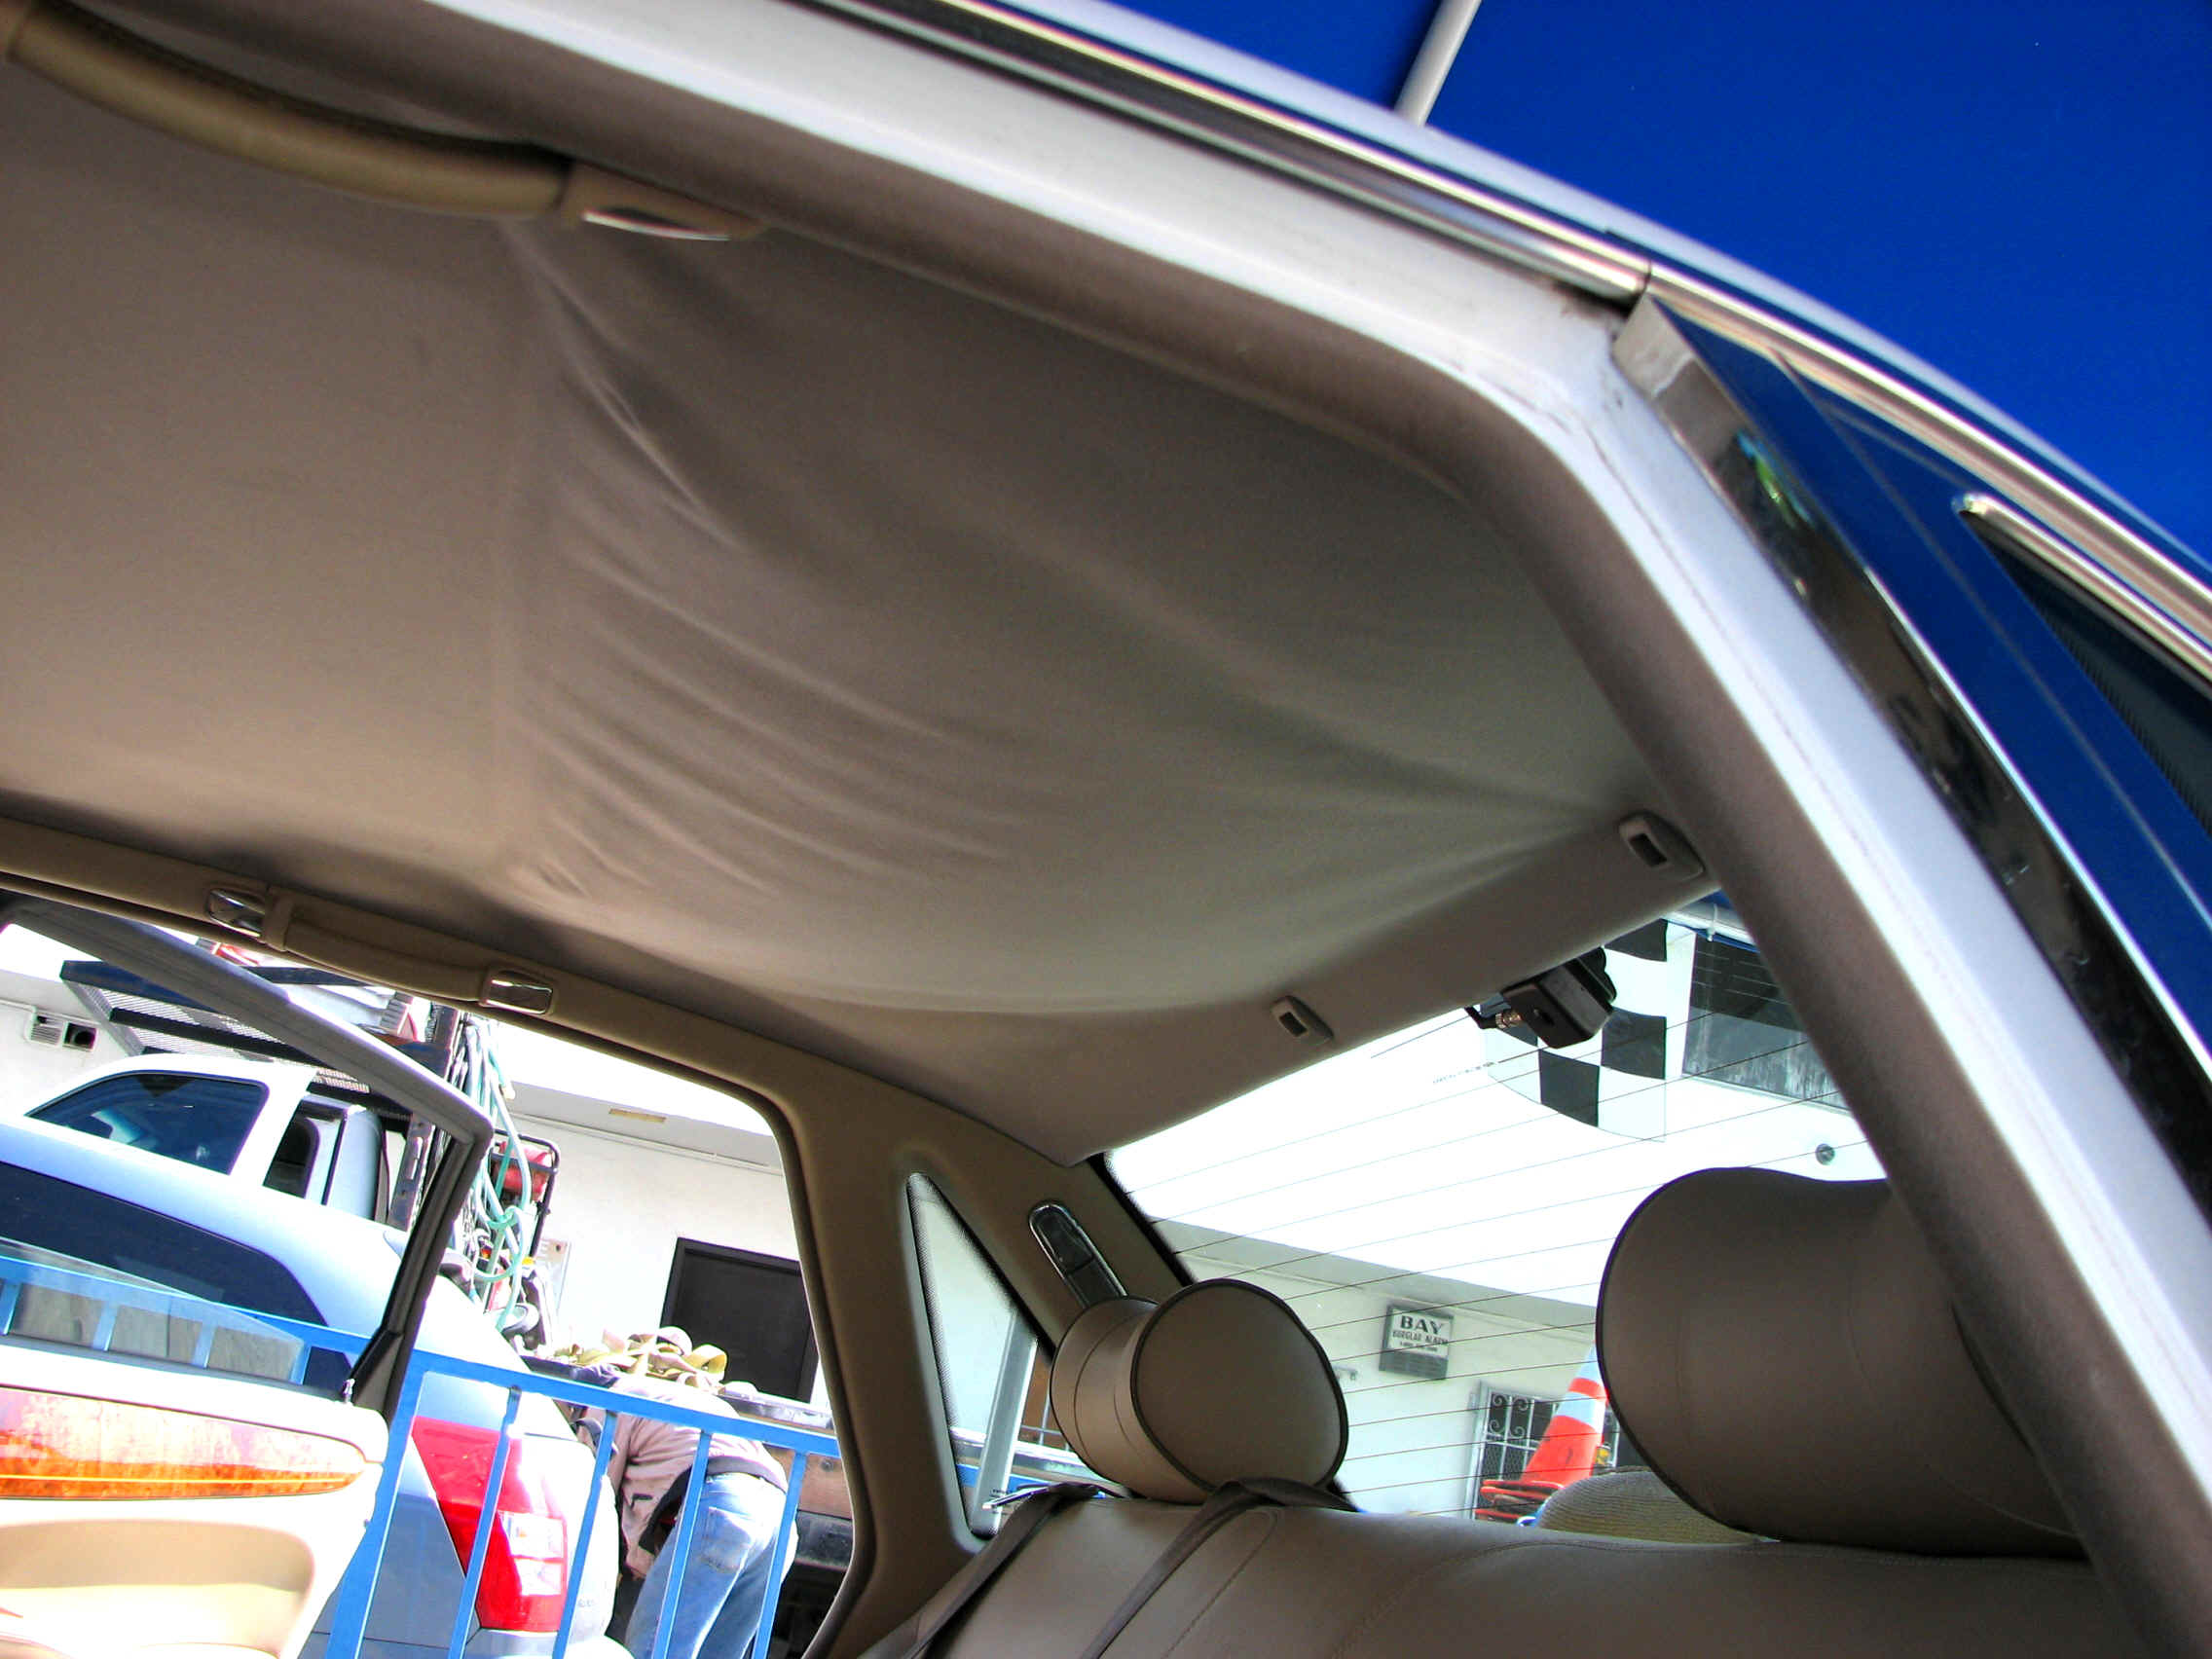 Headliners Car interior ceiling fabric repair